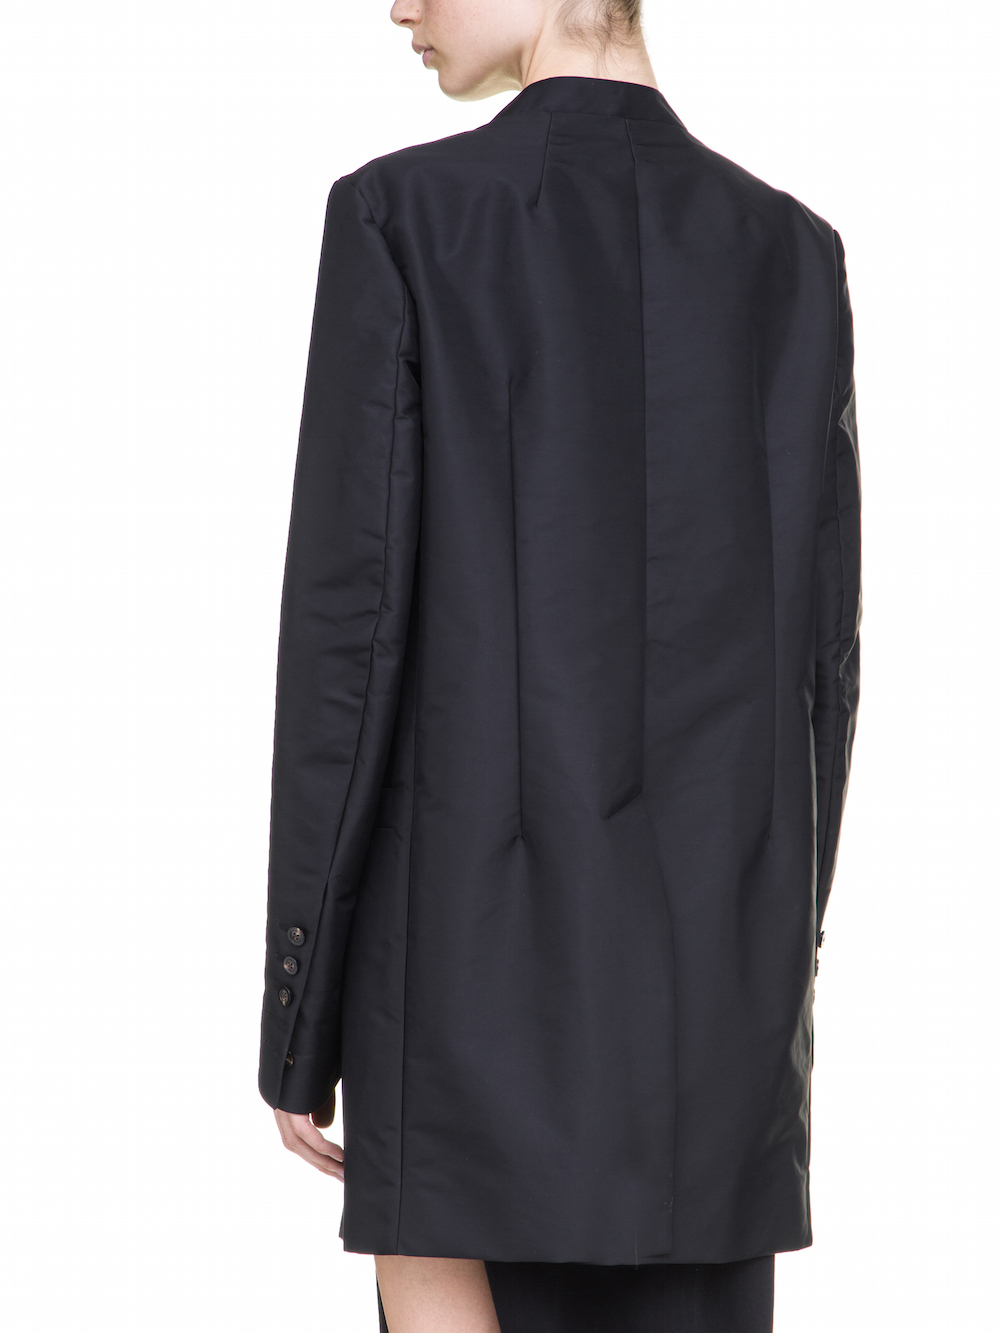 RICK OWENS BROTHER BLAZER IN BLACK WITH GEOMETRICAL PATCHWORK